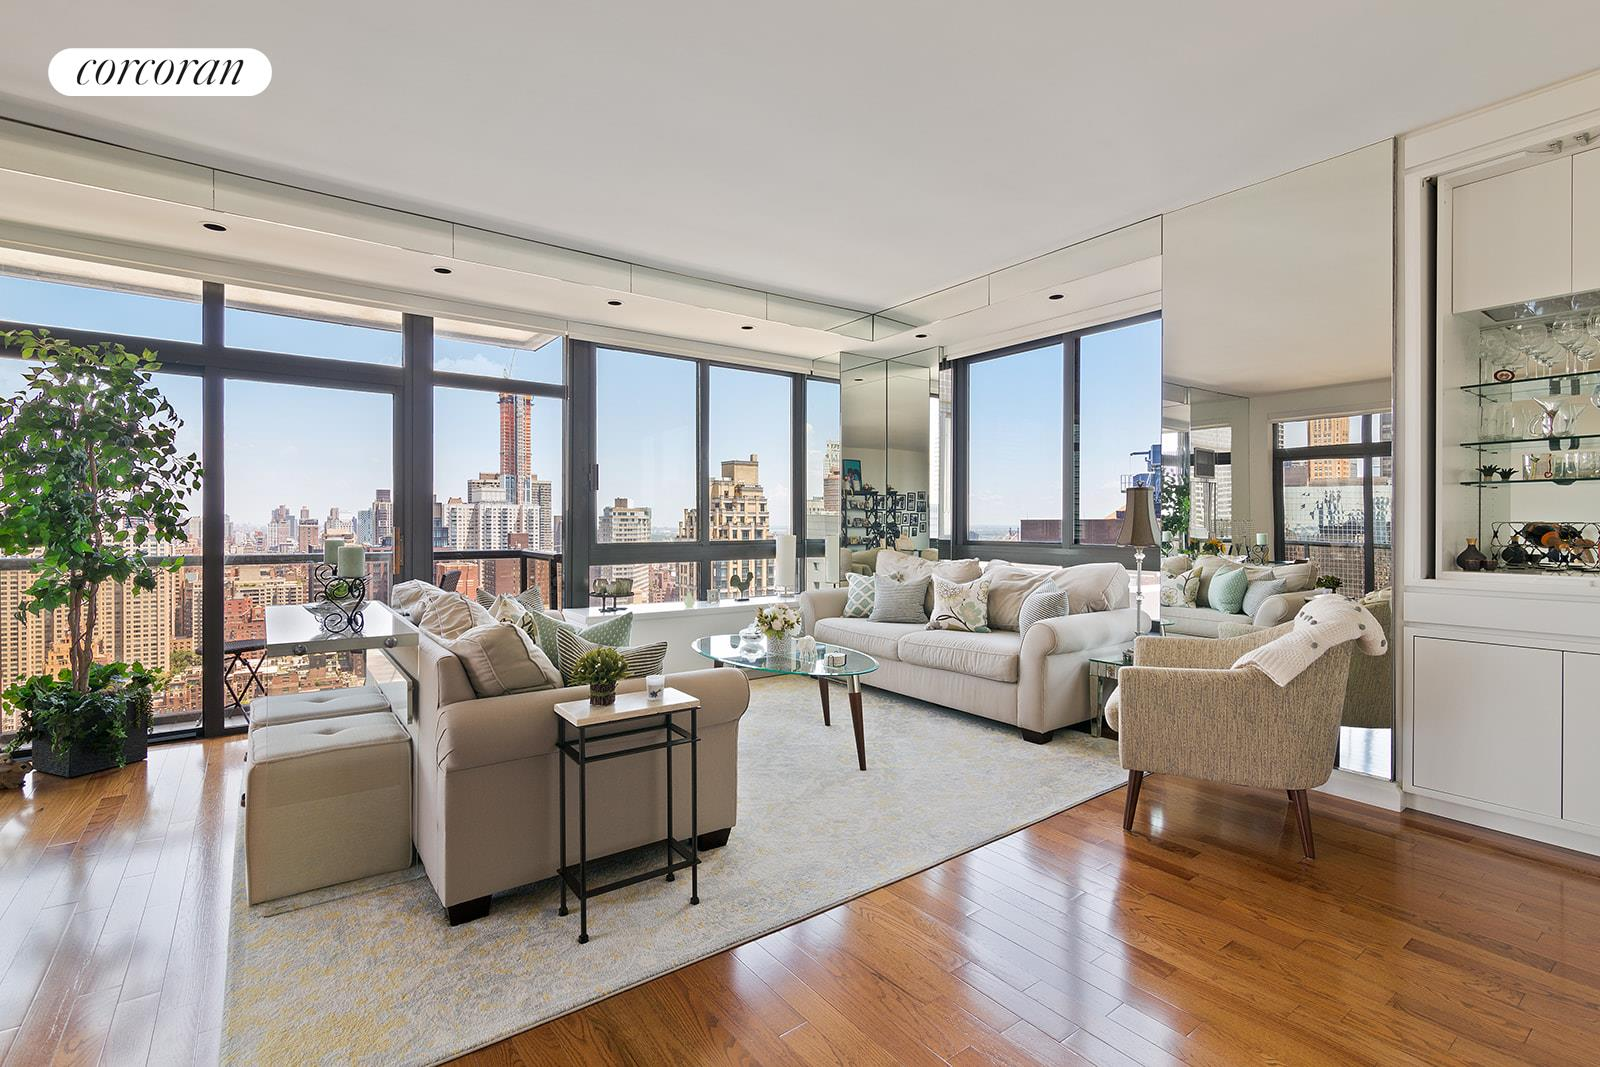 Elegantly designed and expertly renovated, mint condition amazing apartment with picturesque skyline views available for sale at 100 United Nations Plaza, one of Midtown East's premier white-glove condominiums.  This line is one of the largest and most sought after 1 bedroom layouts in the city.  A definite WOW apartment!Upon entering this perfectly appointed 1 bedroom, 2 bathroom unit high on the 37th floor you will be immediately drawn to the impressive open city, river and bridge views framed by three walls of floor-to-ceiling windows. Generous in space with a modern yet classic sensibility, the large open living and dining room boasts North, West and East exposures, a private wrap-around balcony, custom built-ins, a dry bar and recessed custom lighting. An ideal setting whether spending a quiet evening in or entertaining family and friends.The galley kitchen has been beautifully renovated throughout and features modern, crisp white cabinetry with contrasting countertops, large format stone flooring, a suite of stainless steel appliances by Samsung and custom built-ins for maximum storage.Down the hallway is a super spacious and peaceful bedroom suite. This king-sized bedroom is bathed in natural light from oversized windows with panoramic city views to the north, while five substantial closets plus a generous walk-in closet provide maximum storage space. The windowed en suite marble bathroom has a glass-enclosed shower, separate Jacuzzi bathtub and updated vanity.This immaculate apartment also features high ceilings, hardwood flooring, a second full, windowed guest bathroom, central heat and A/C, and a custom entry foyer with an interior glass-paneled door.Located on East 48th Street and First Avenue, 100 United Nations Plaza is a white-glove, full service condominium in Manhattan's Turtle Bay neighborhood. Greeting residents with beautifully landscaped gardens and waterfalls, this impeccably run building offers a 24-hour doorman, valet and concierge service, on